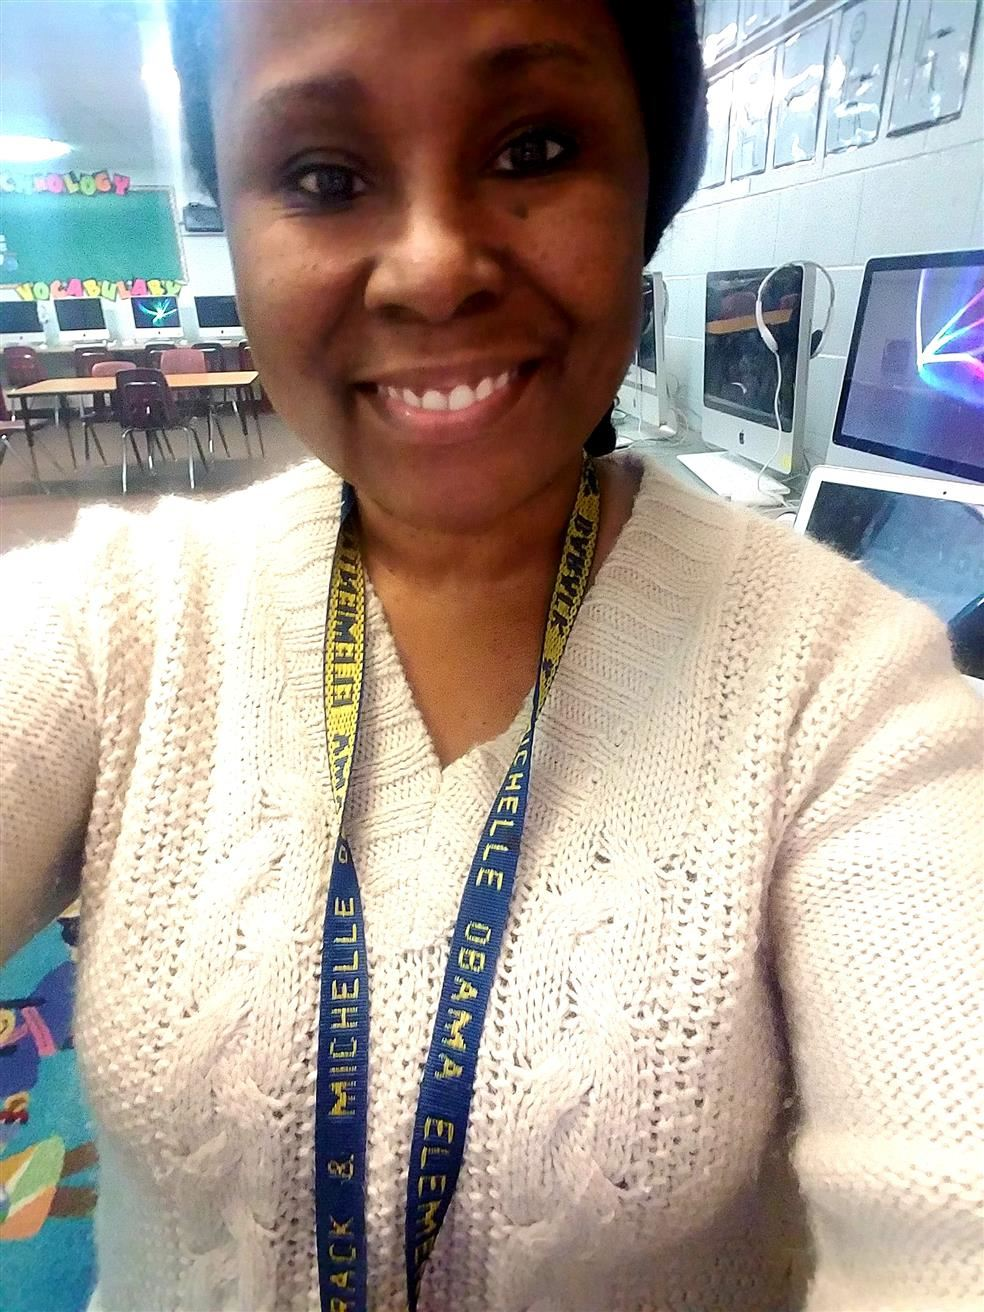 Ms Weatherspoon